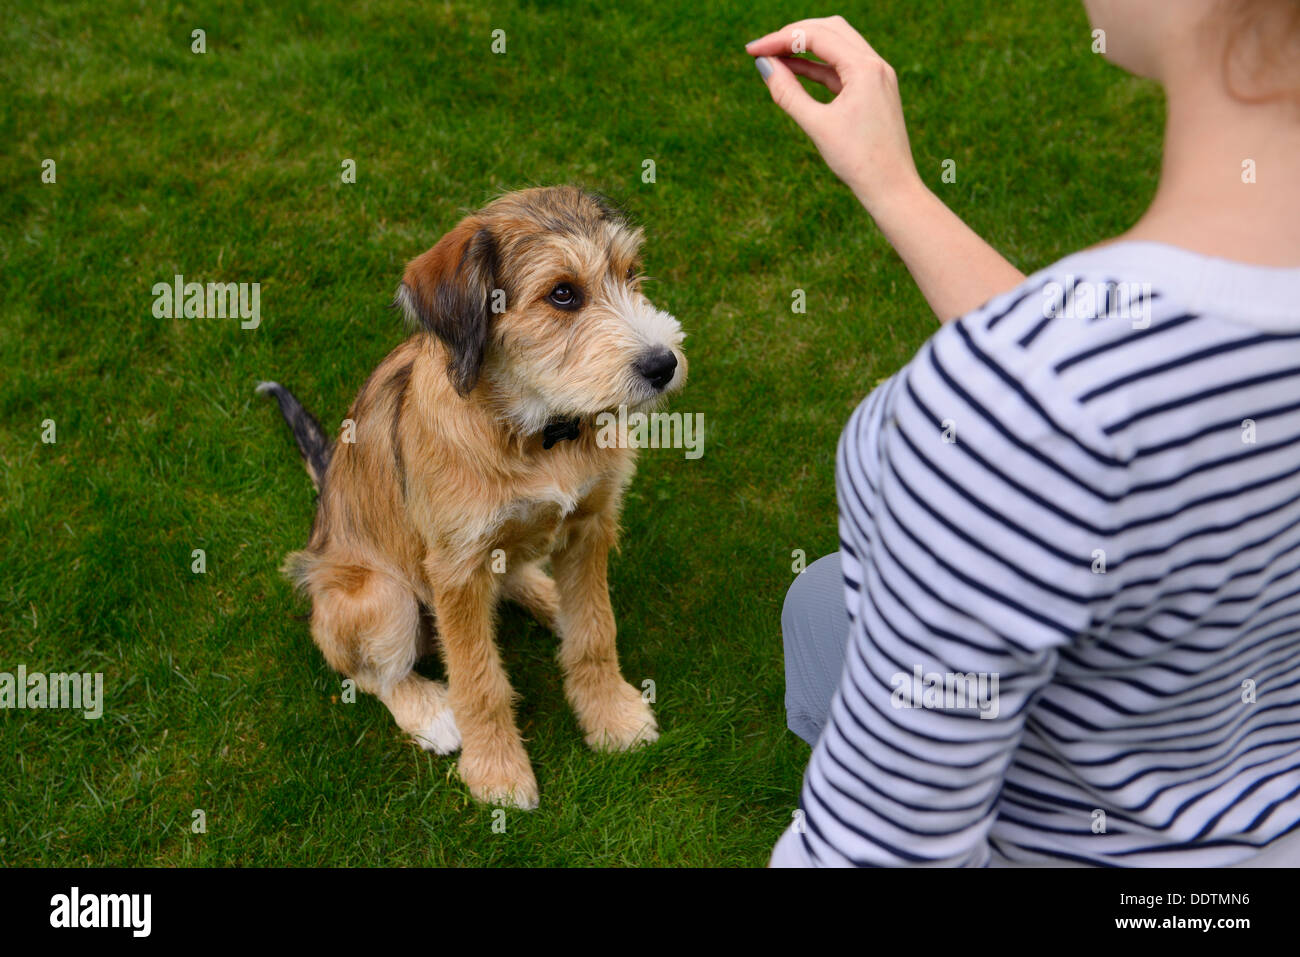 Sheepish young puppy being trained by young woman to sit on lawn grass - Stock Image